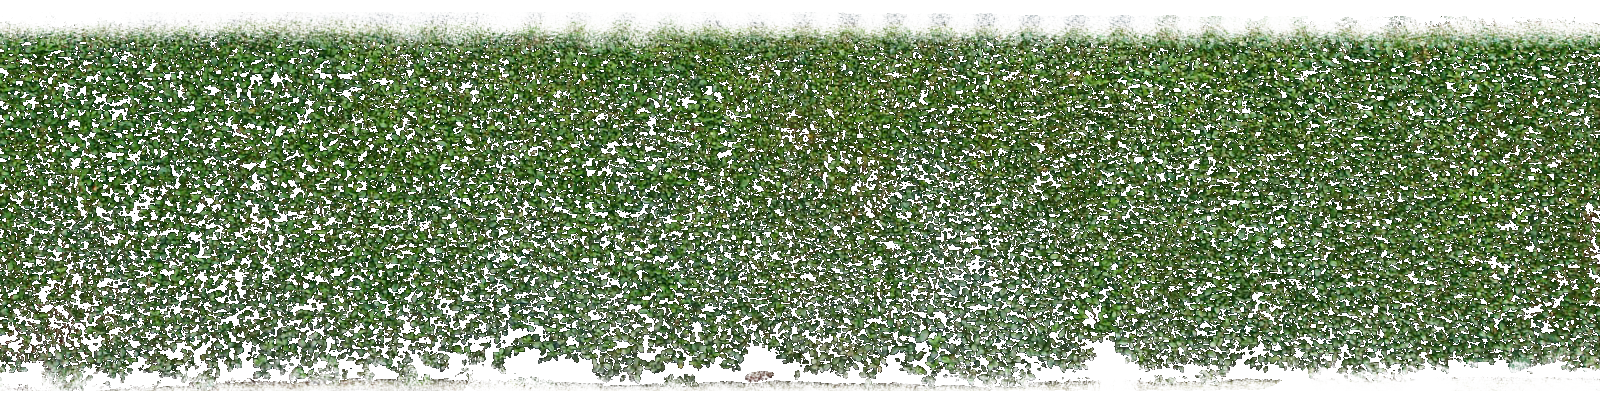 Background Png Hedges Hd Transparent image #32450